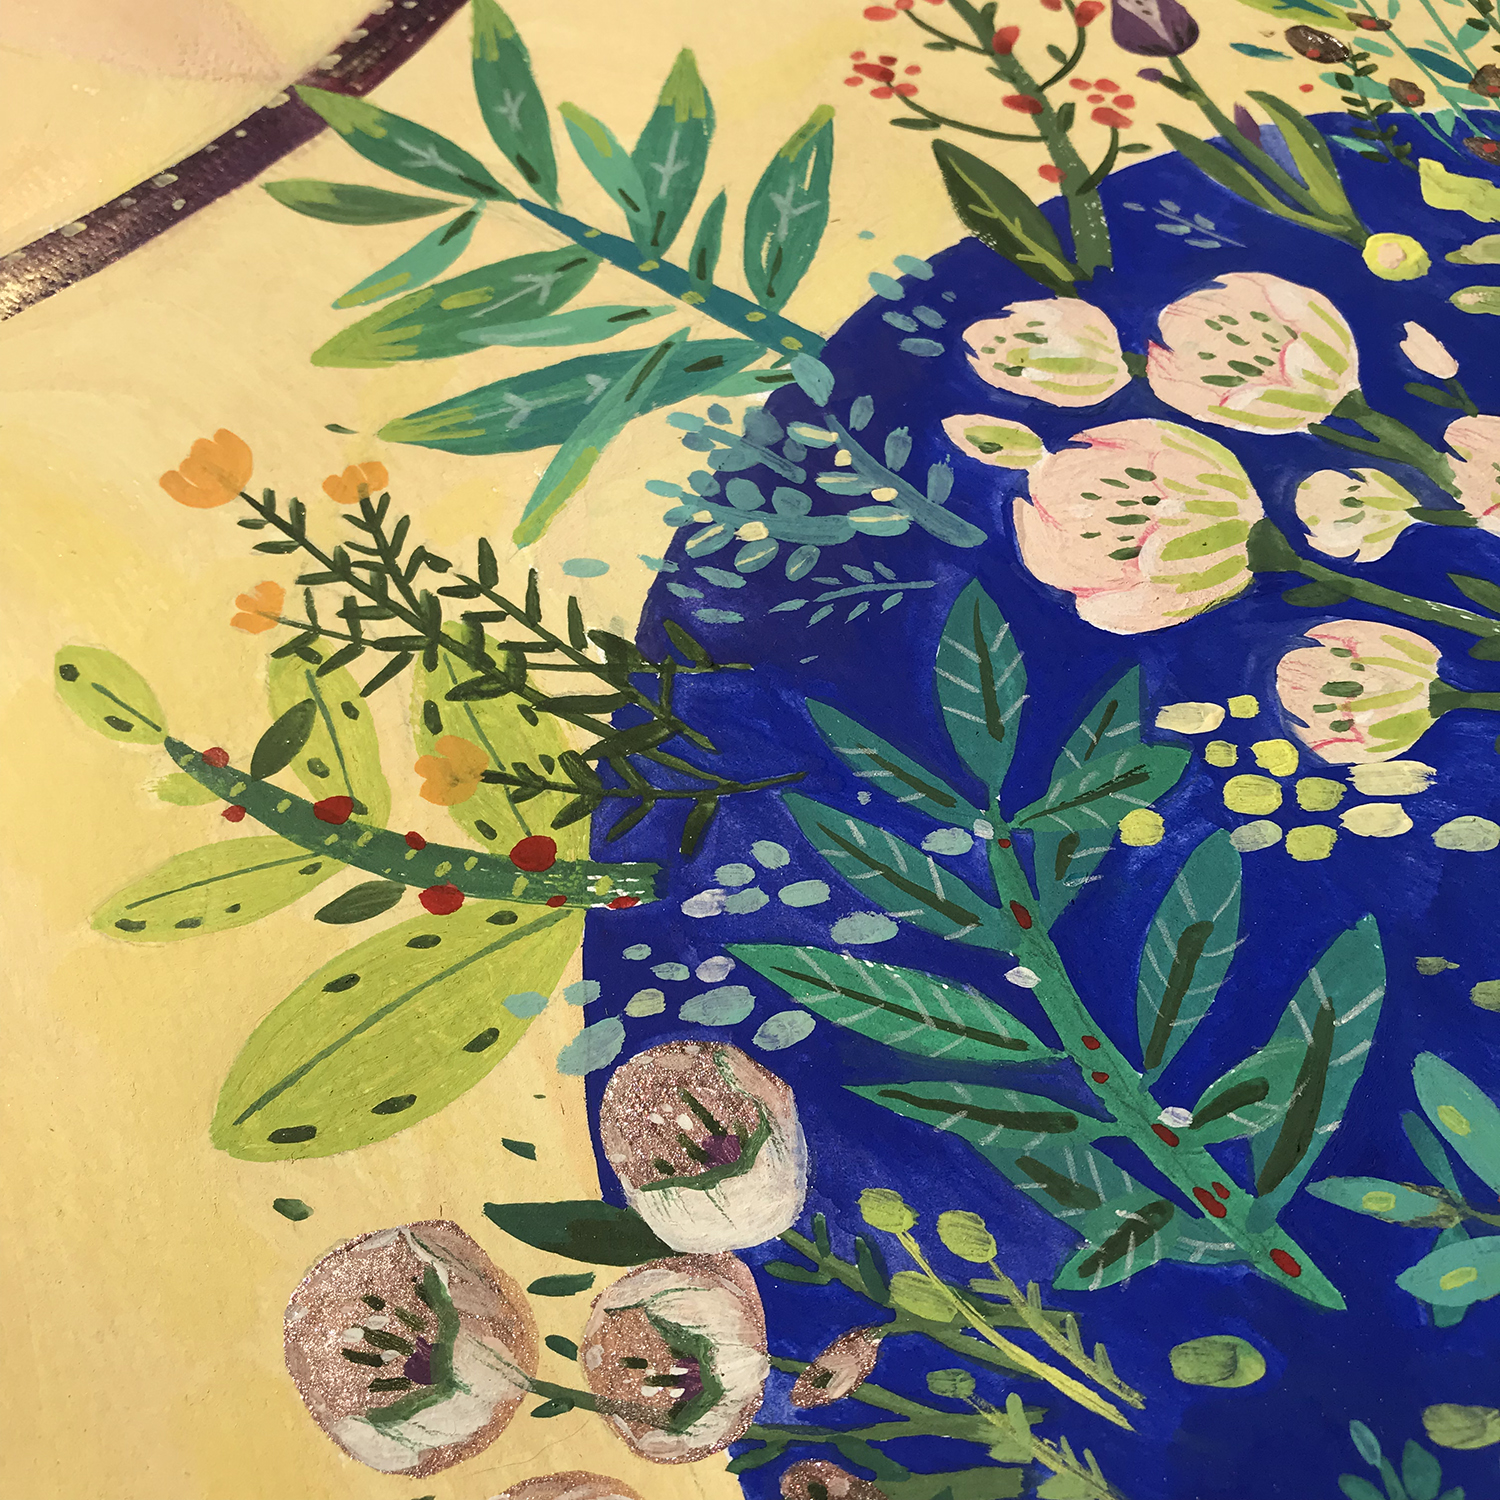 the-holy-sun-details-plants-flowers-art-painting